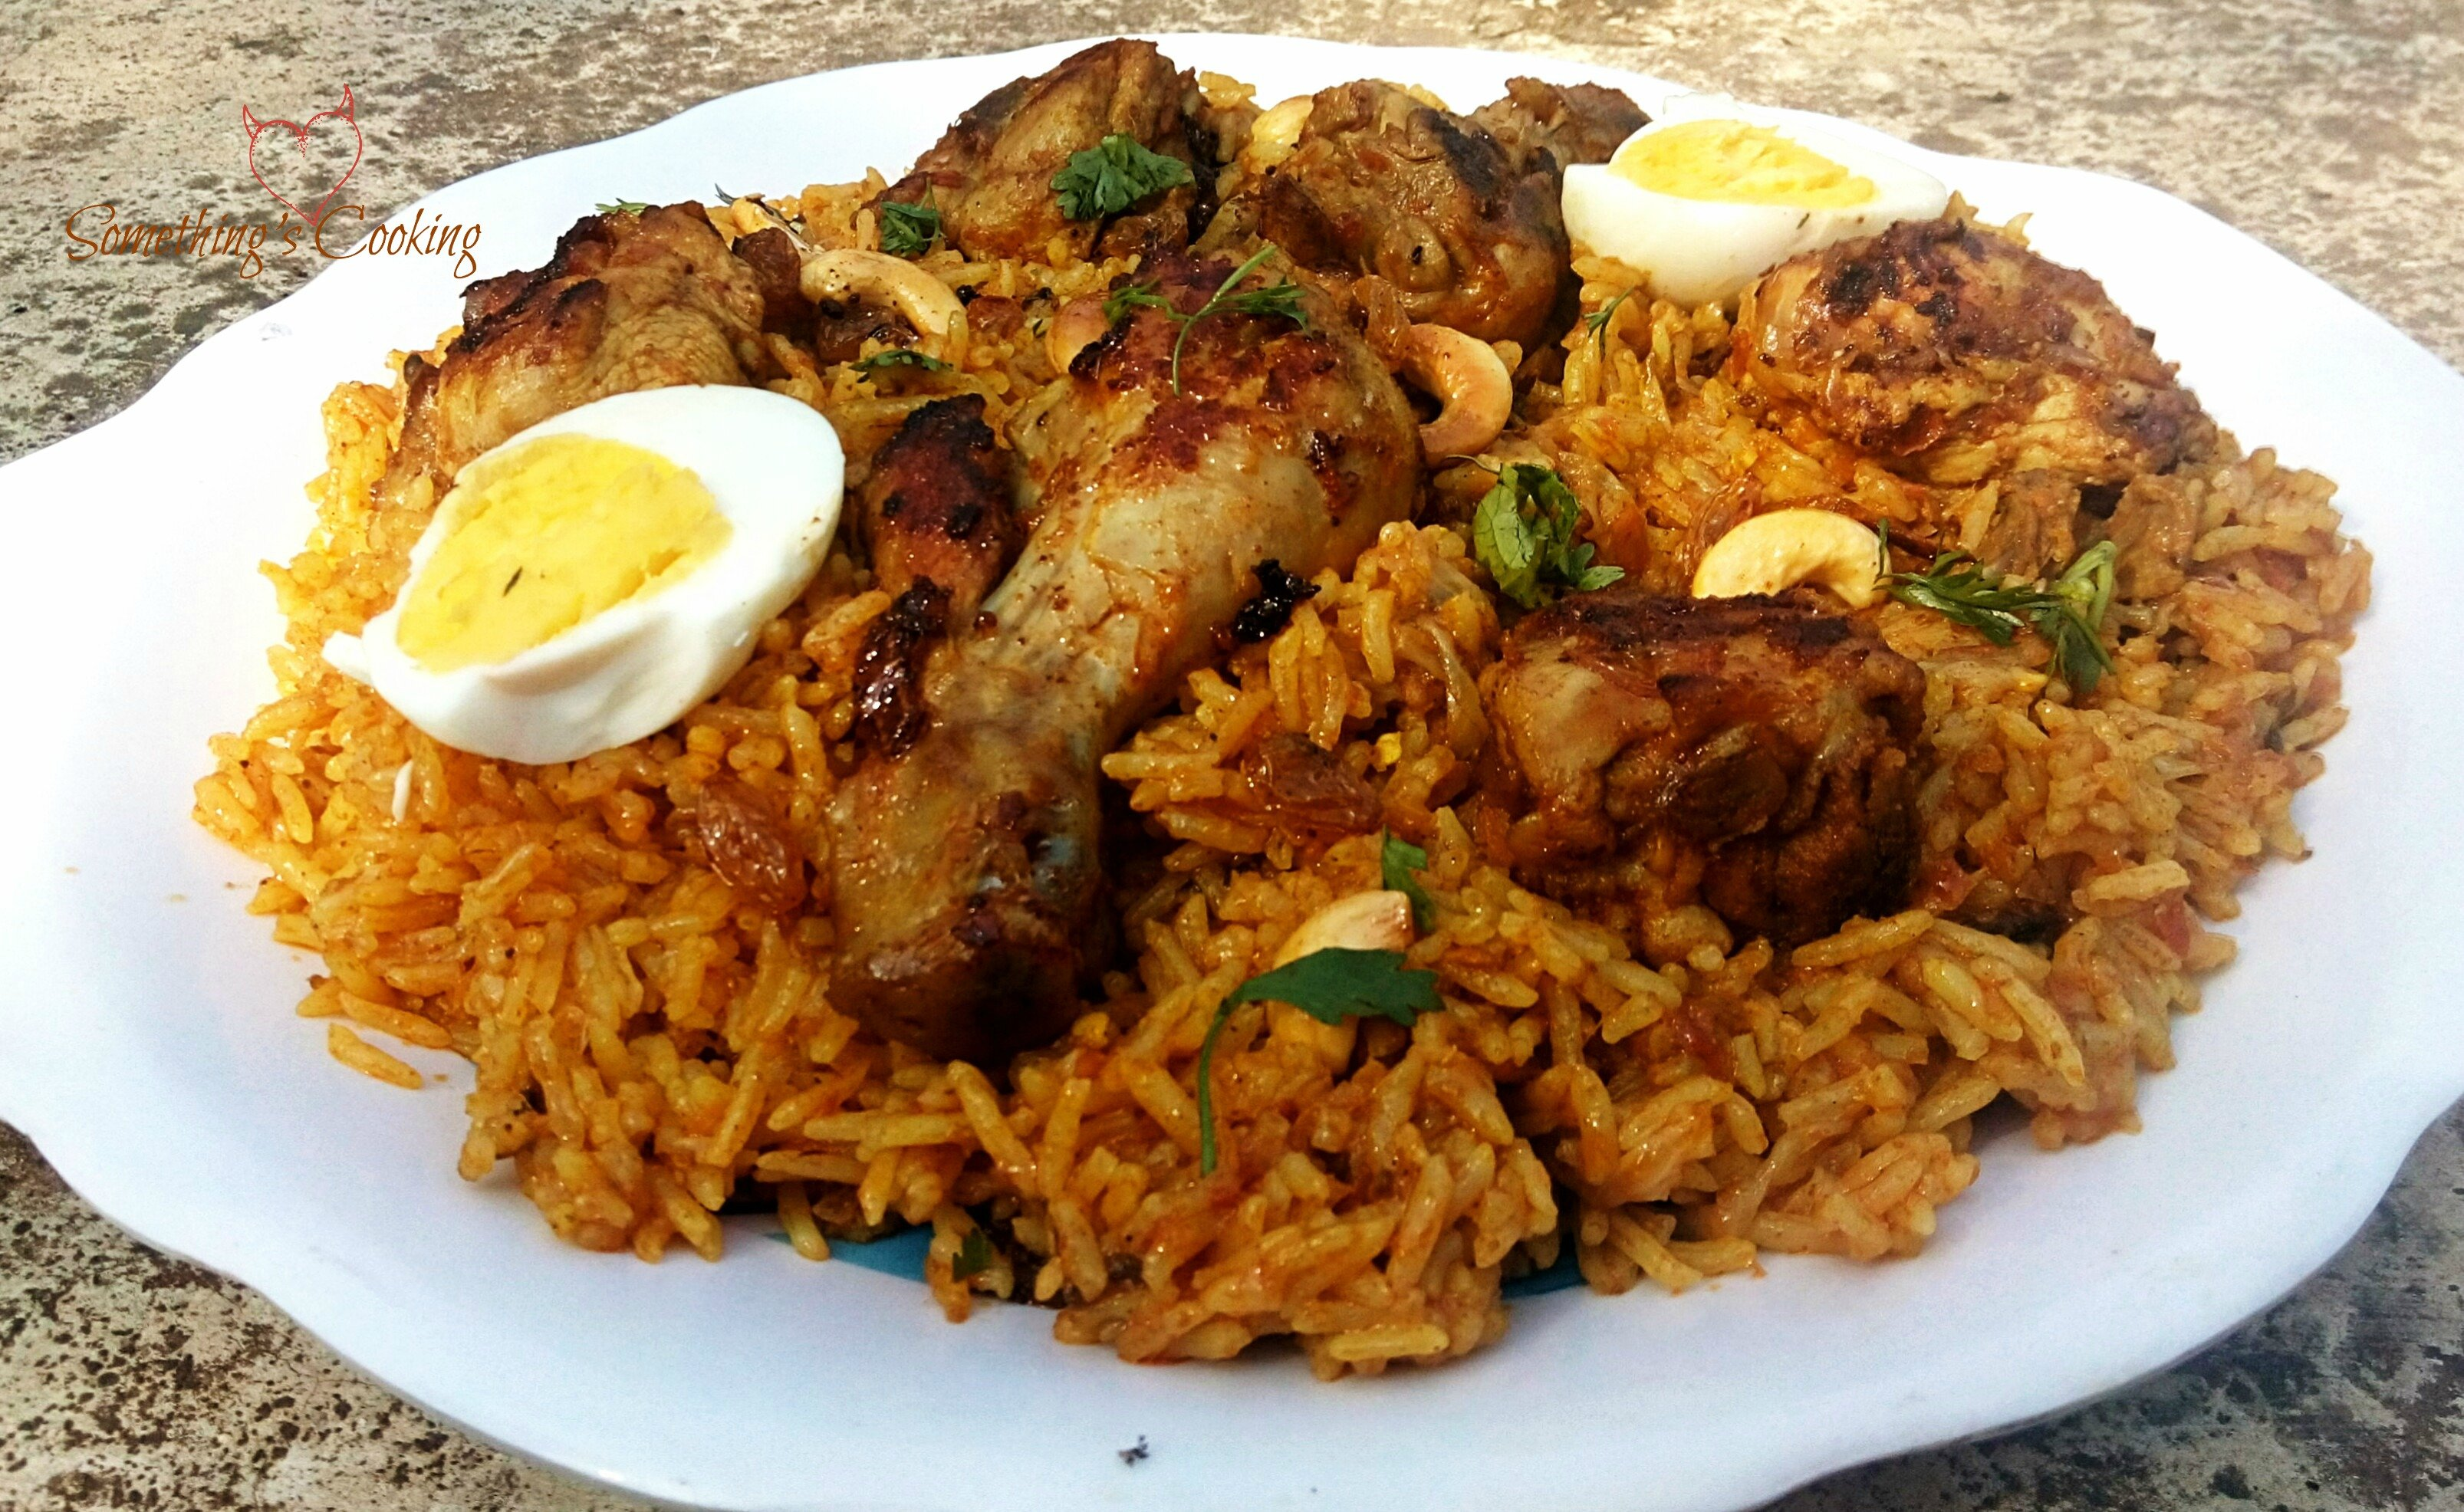 Chicken Kabsa – Rice mixed with Spices and Meat